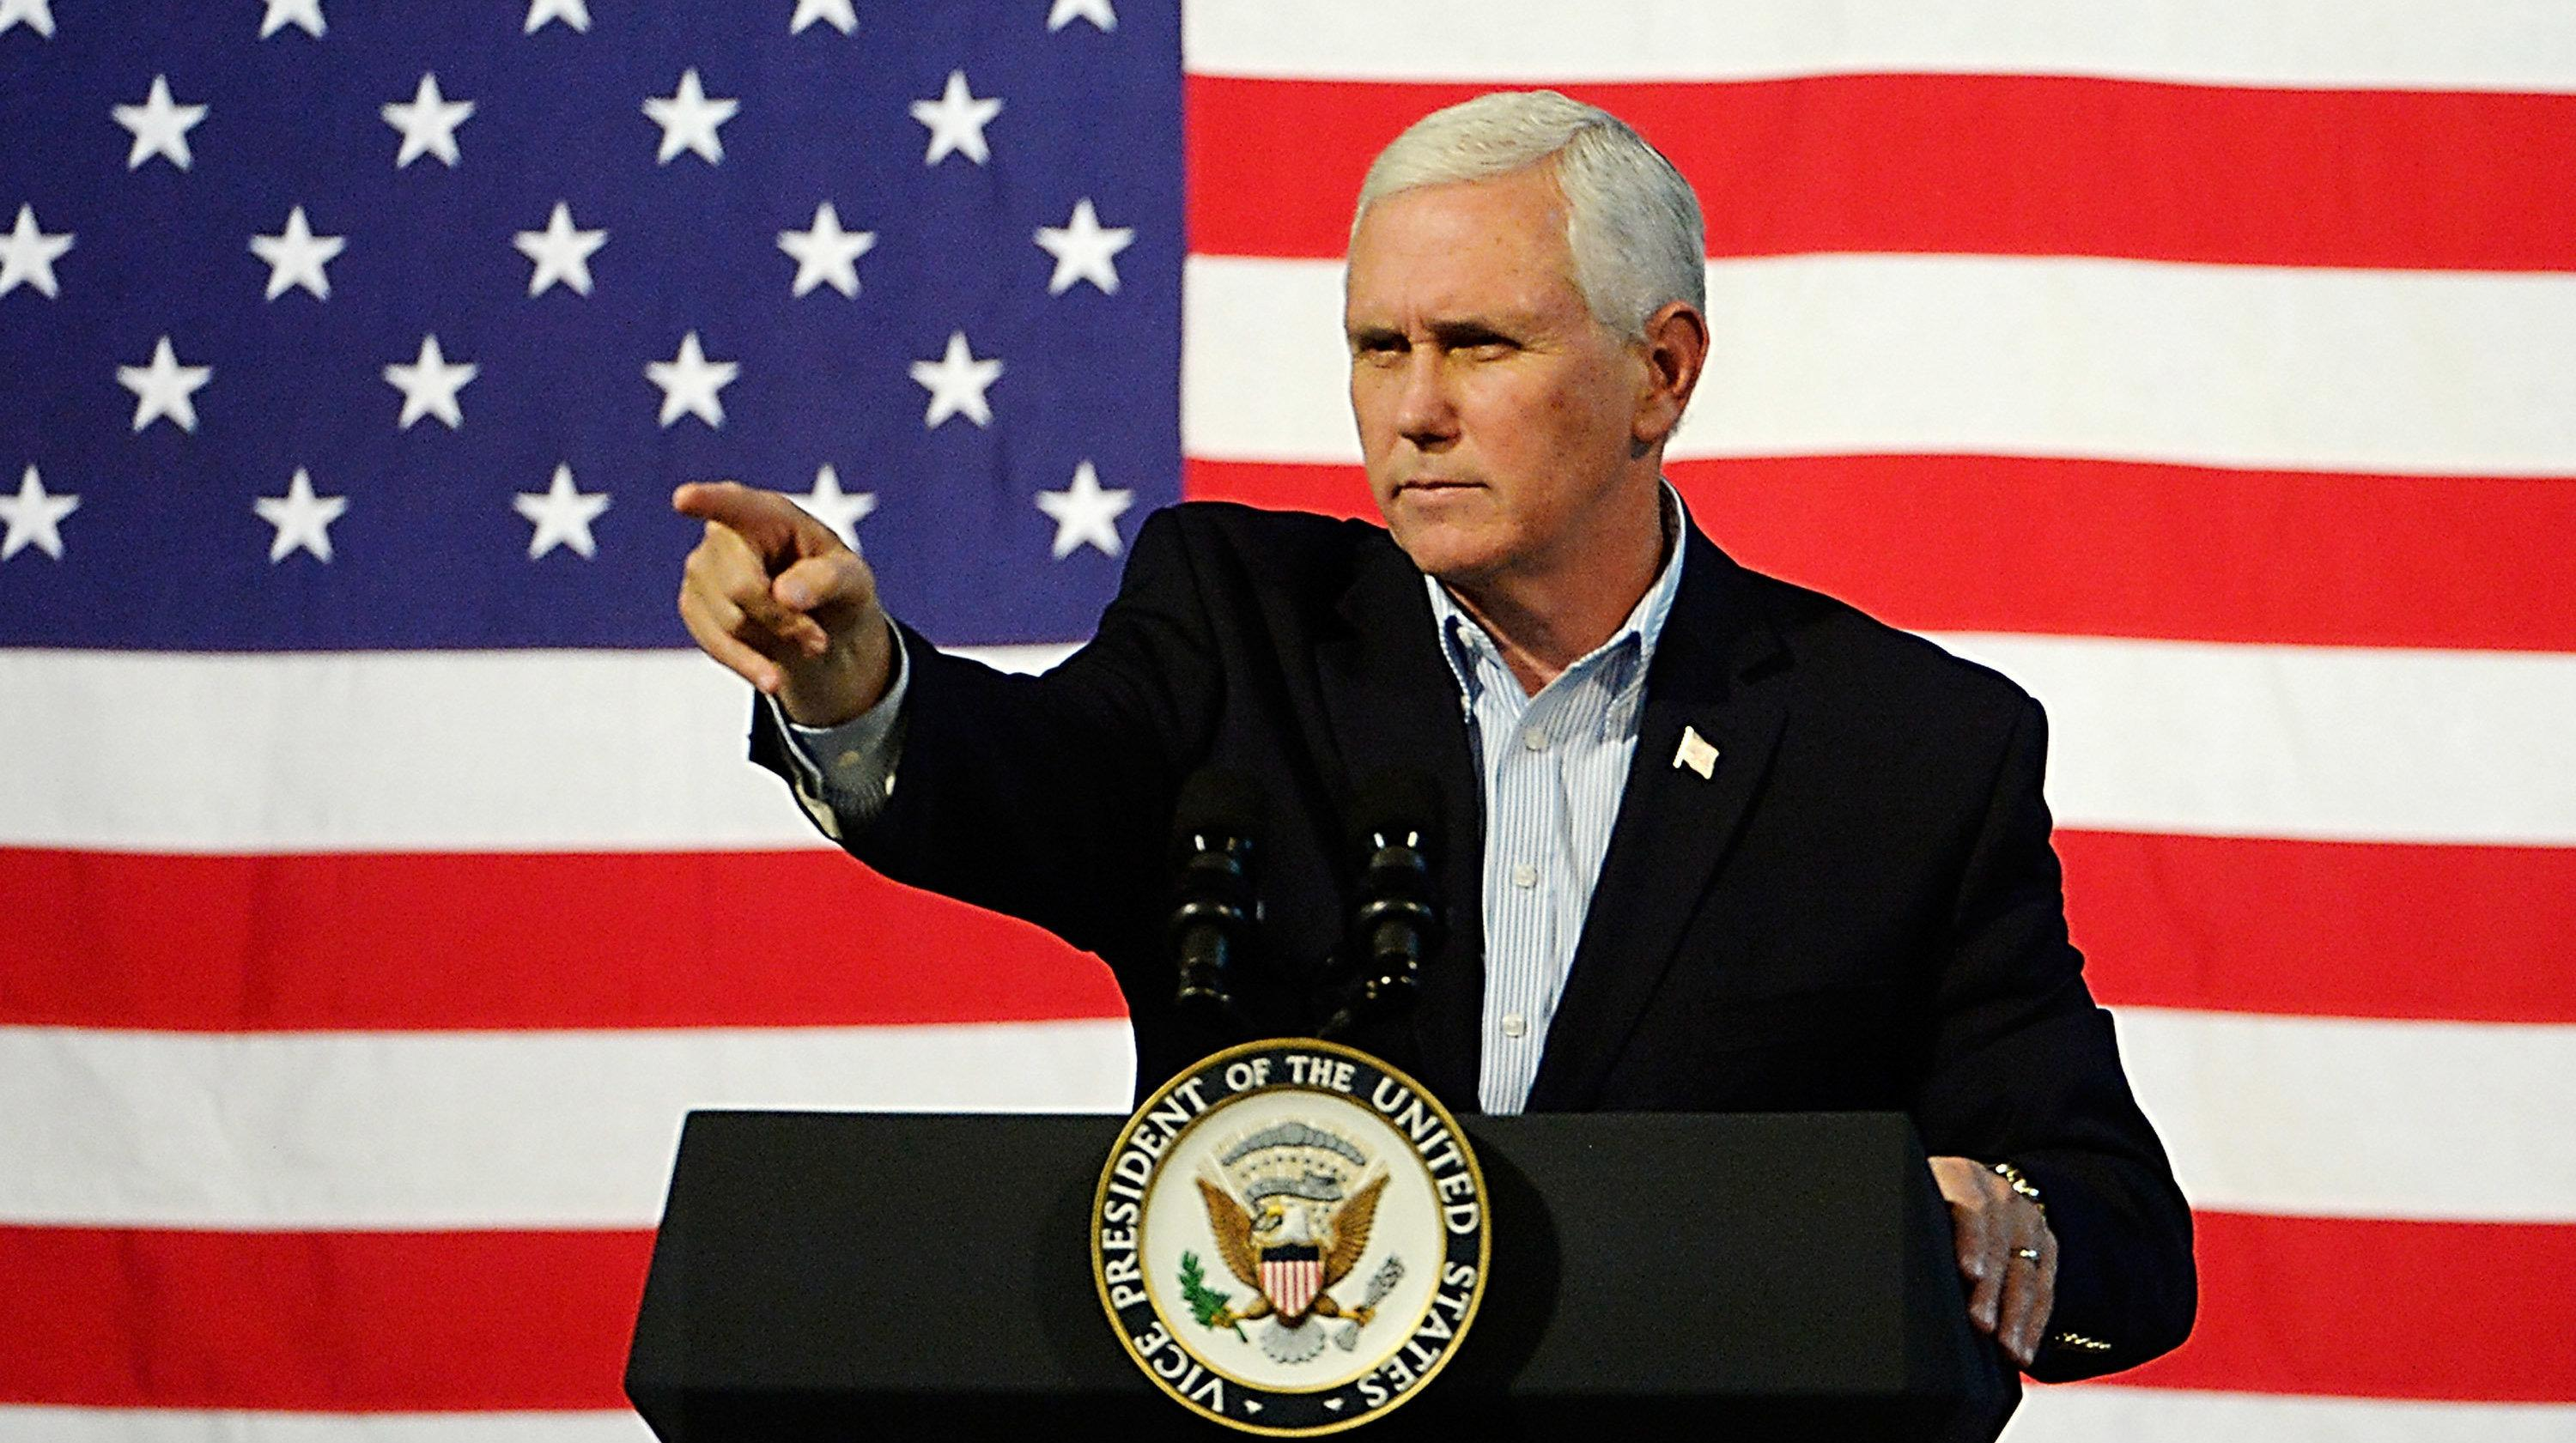 Mike Pence Keeps Getting Caught In A Web Of Deception